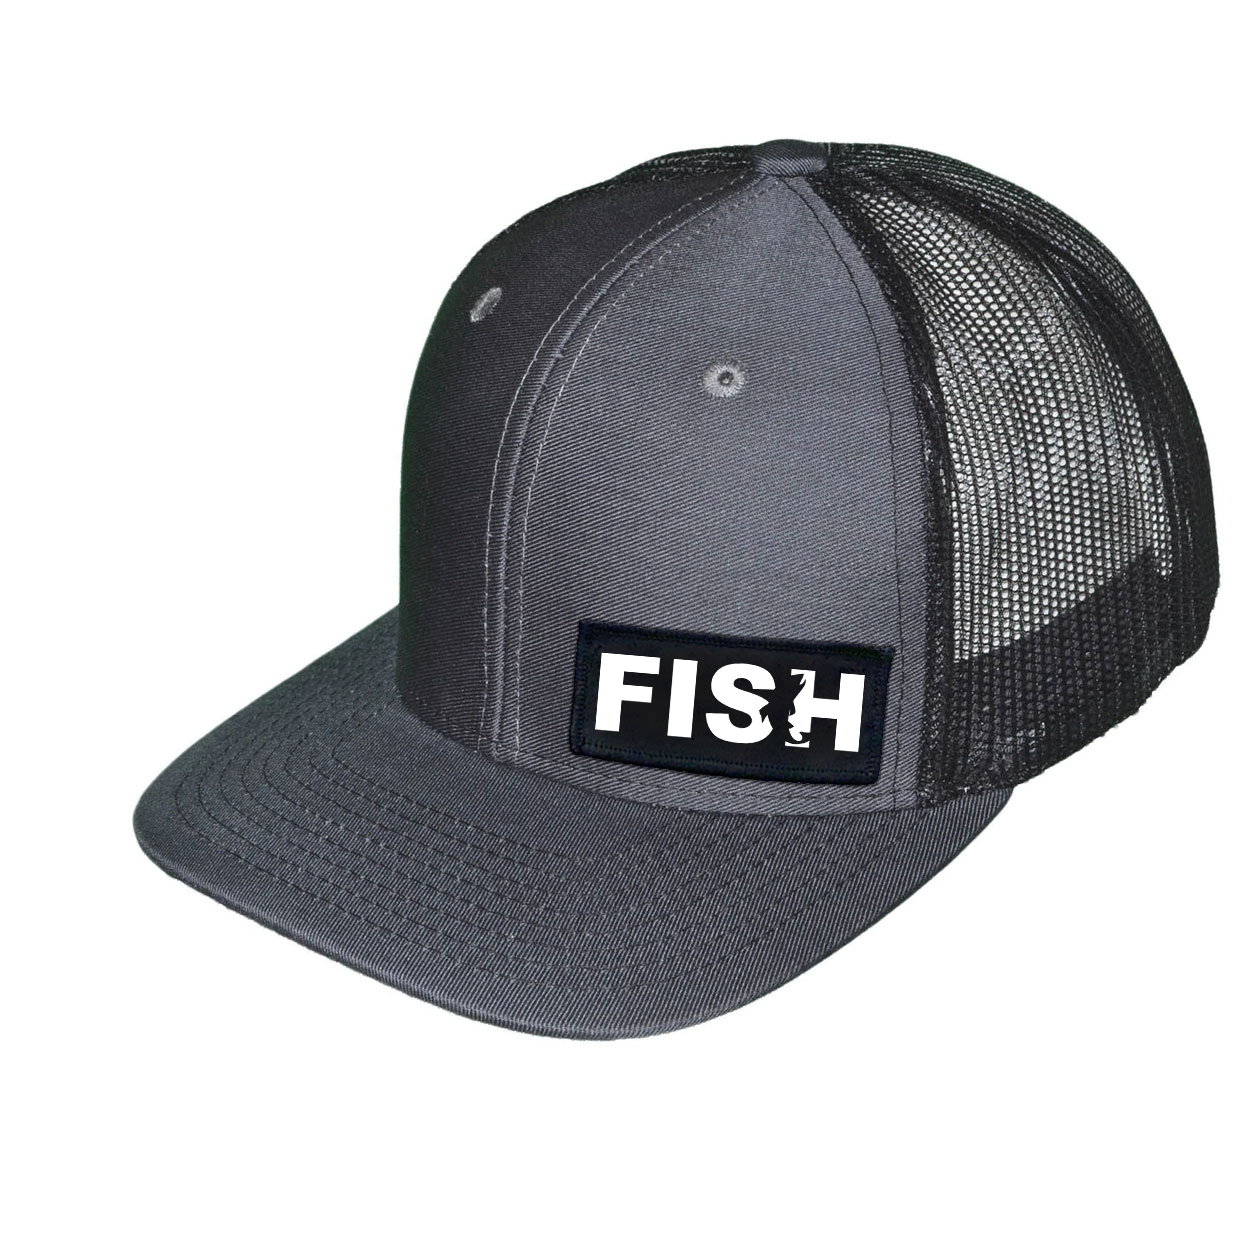 Fish Catch Logo Night Out Woven Patch Snapback Trucker Hat Dark Gray/Black (White Logo)